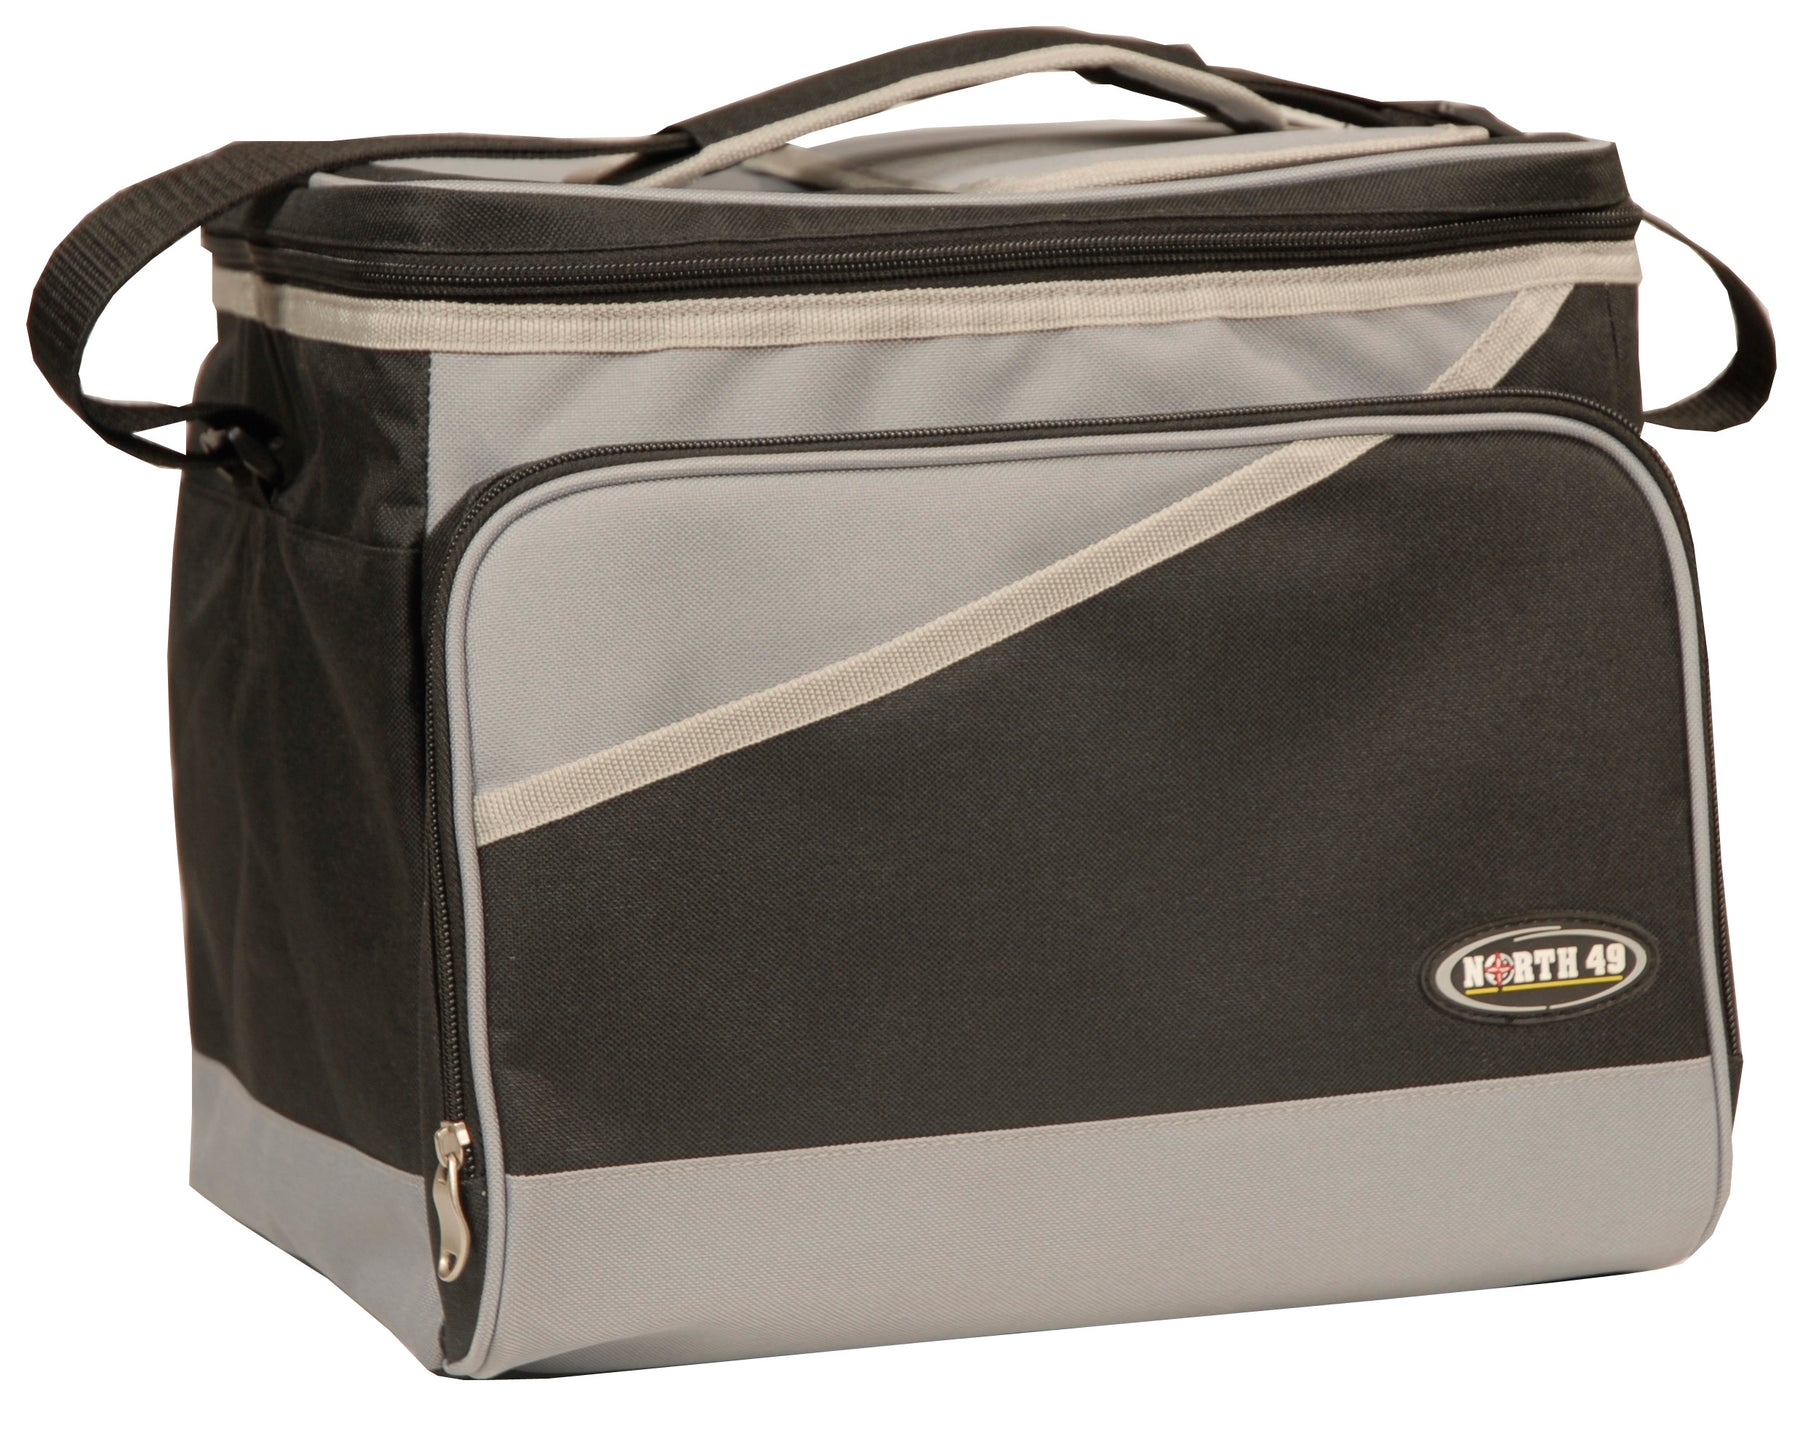 Soft-Sided Cooler Medium or Large